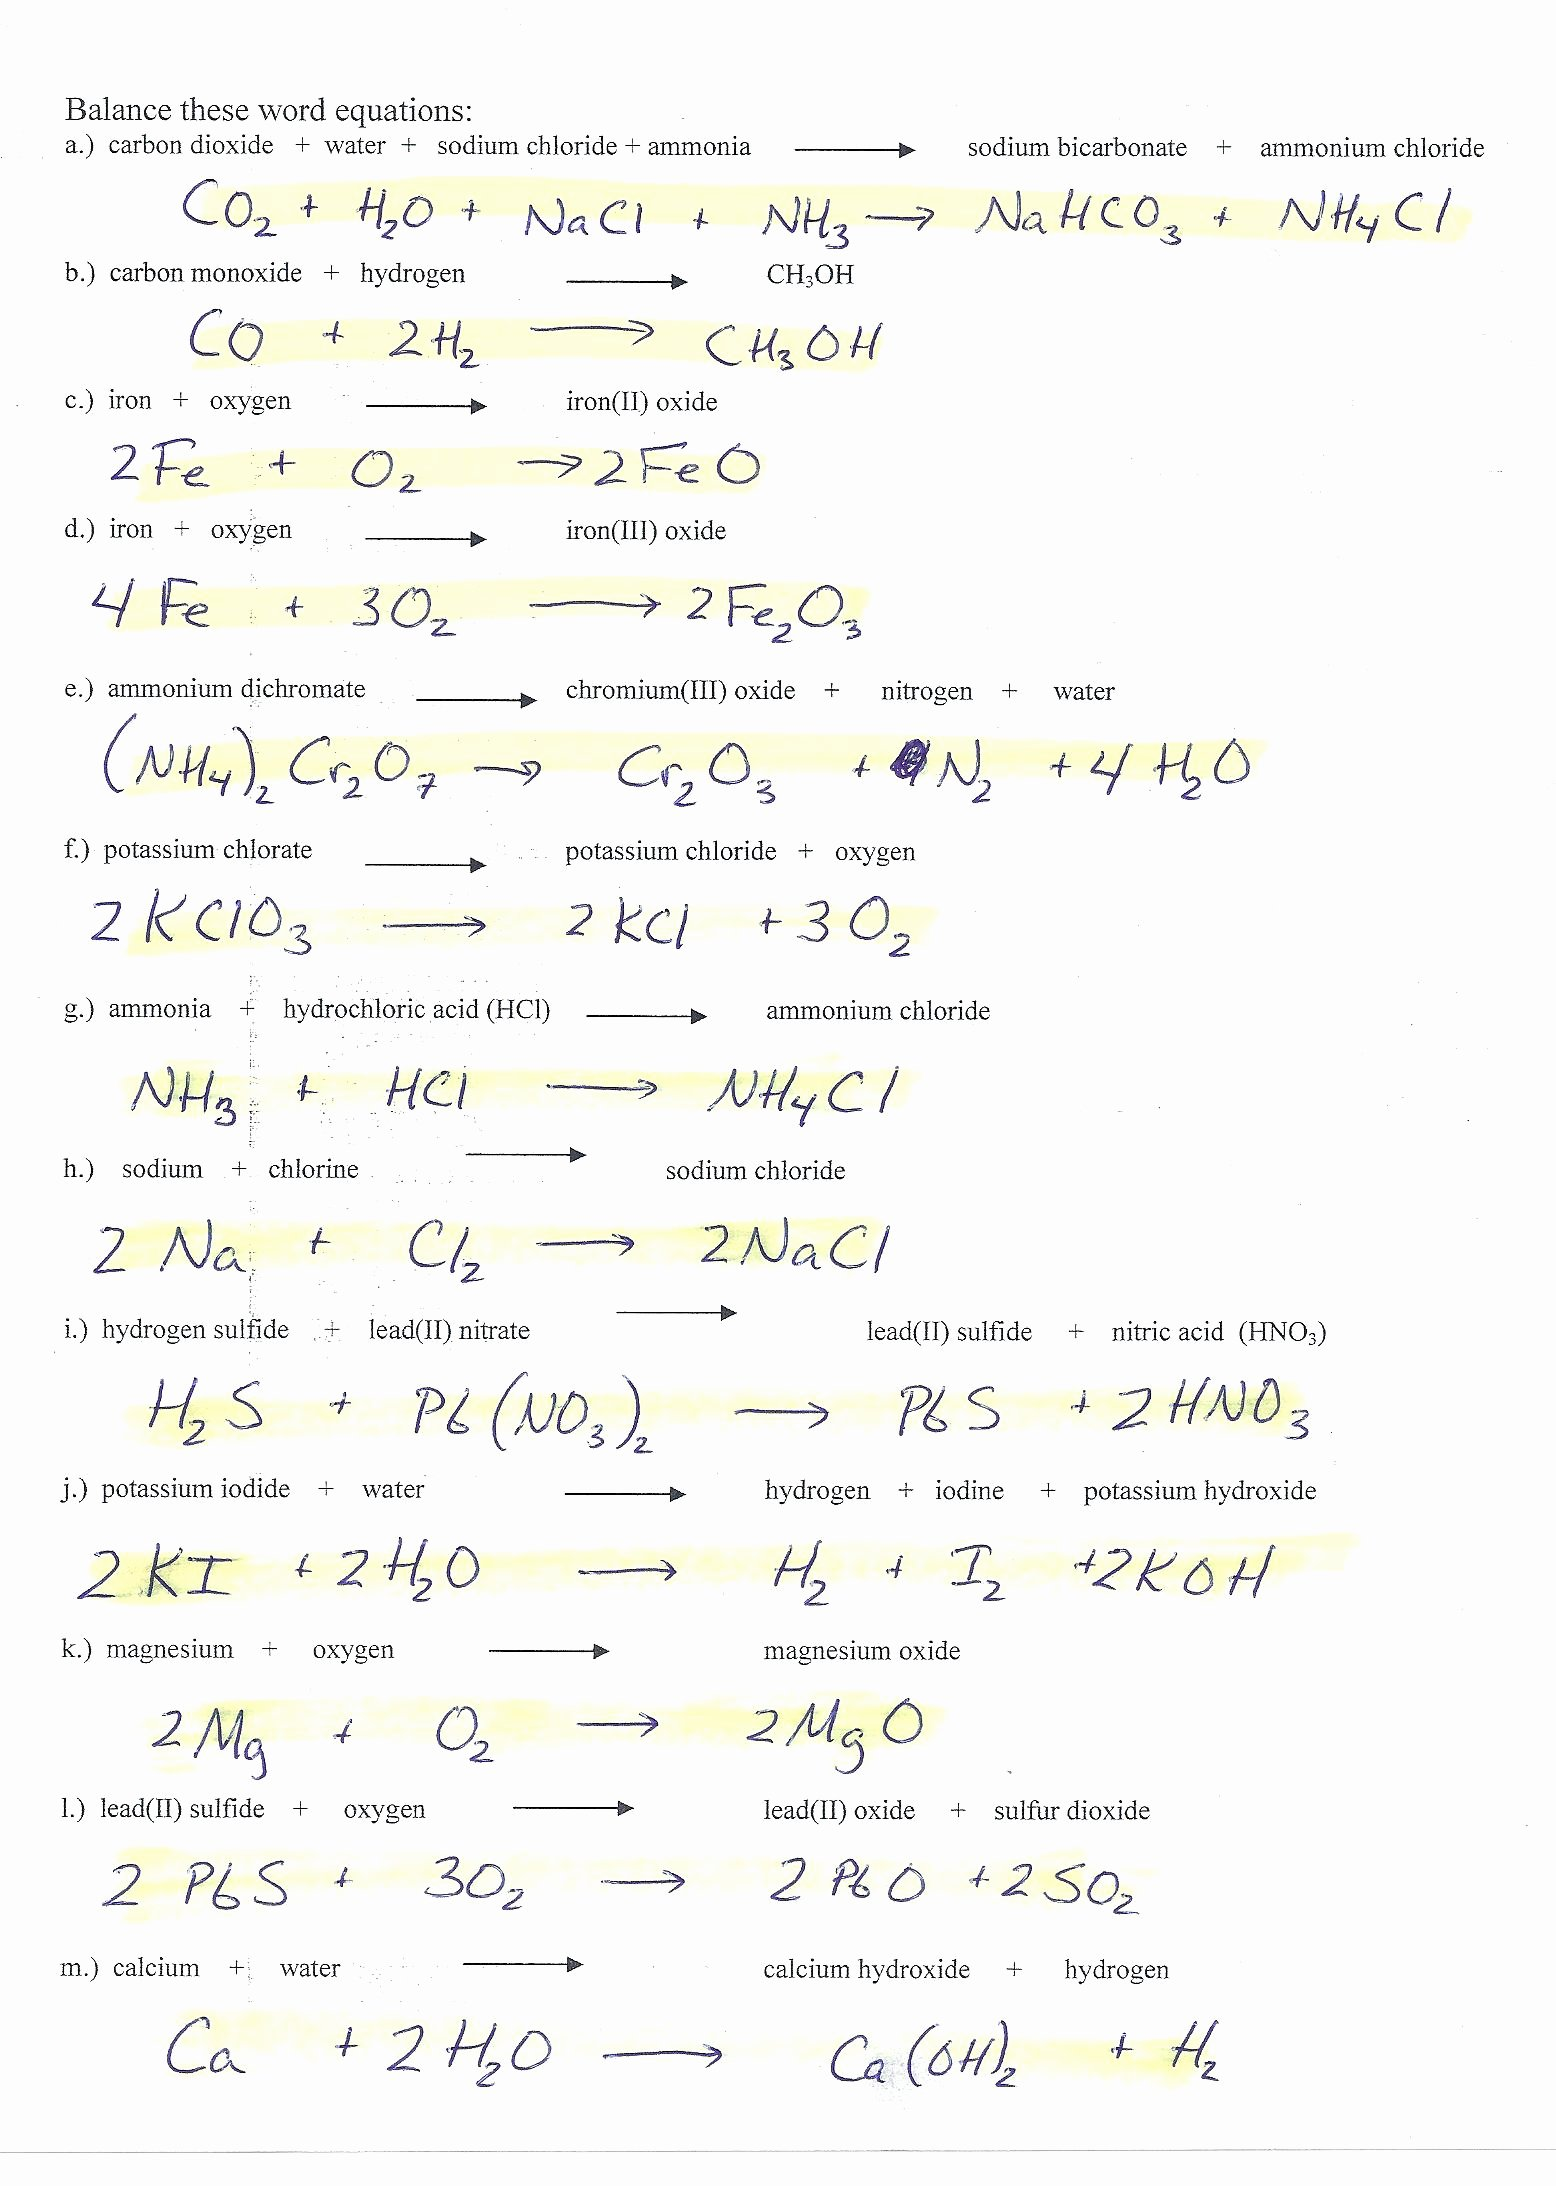 Balancing Act Worksheet Answer Key Unique Balancing Equations Worksheet 2 Answer Key Chemfiesta